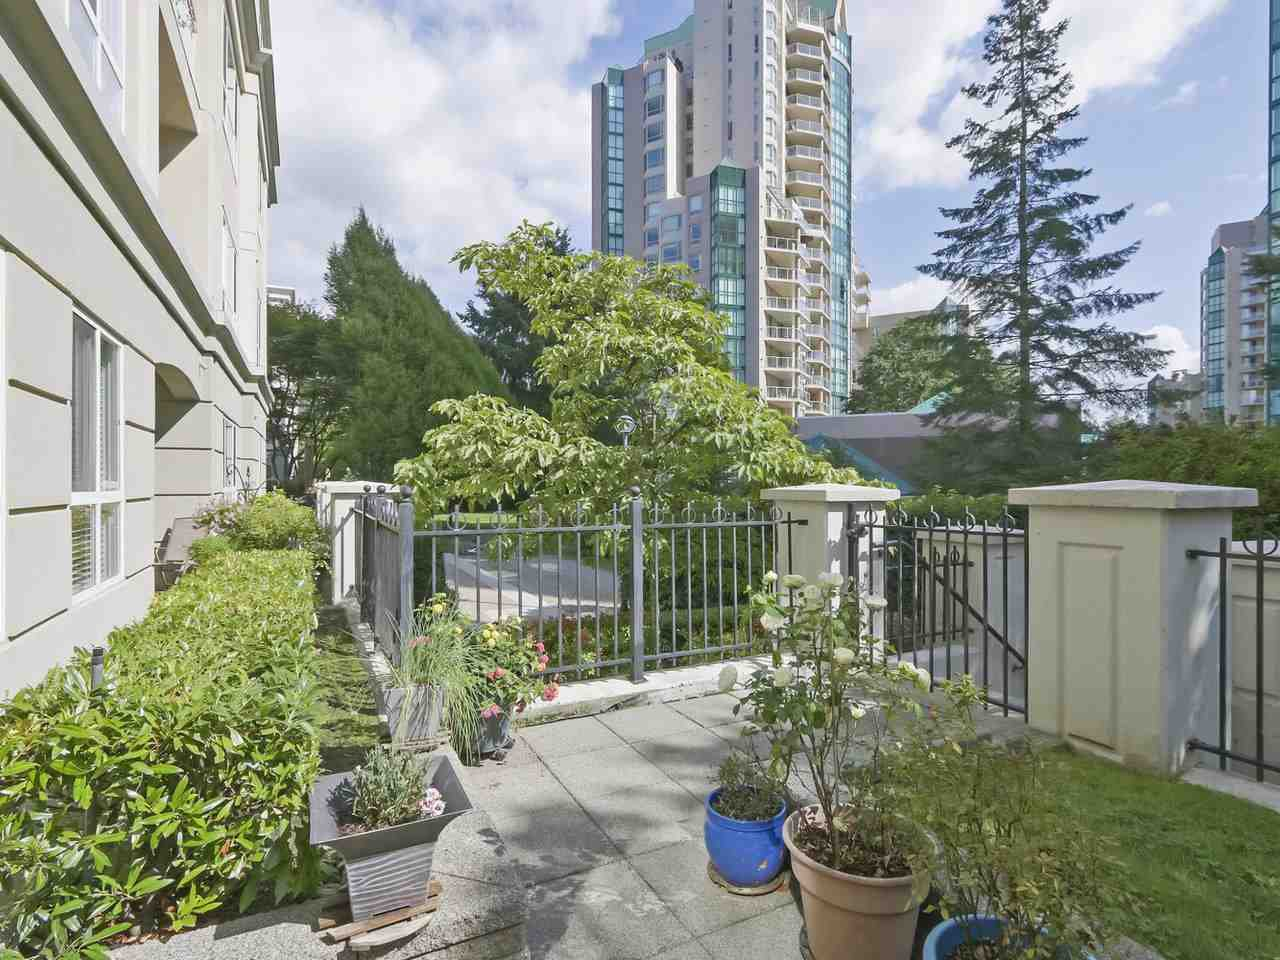 kitchen patio offers convenient walk out access to enjoy the courtyard garden and pathways to Pipeline Road or Eastwood St.,